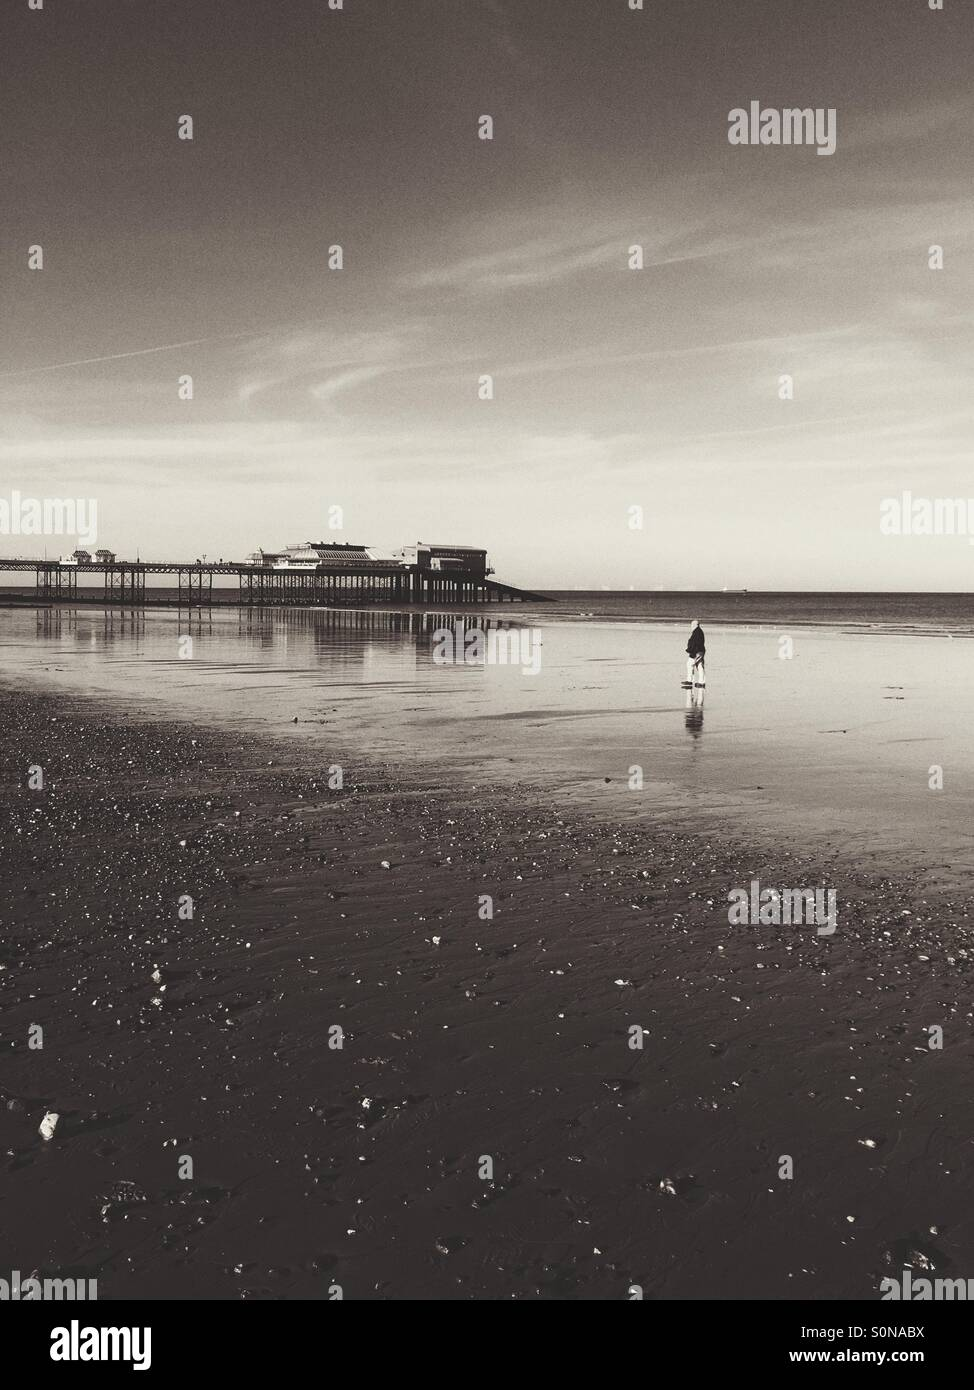 A scene from Cromer in Norfolk,England - Stock Image